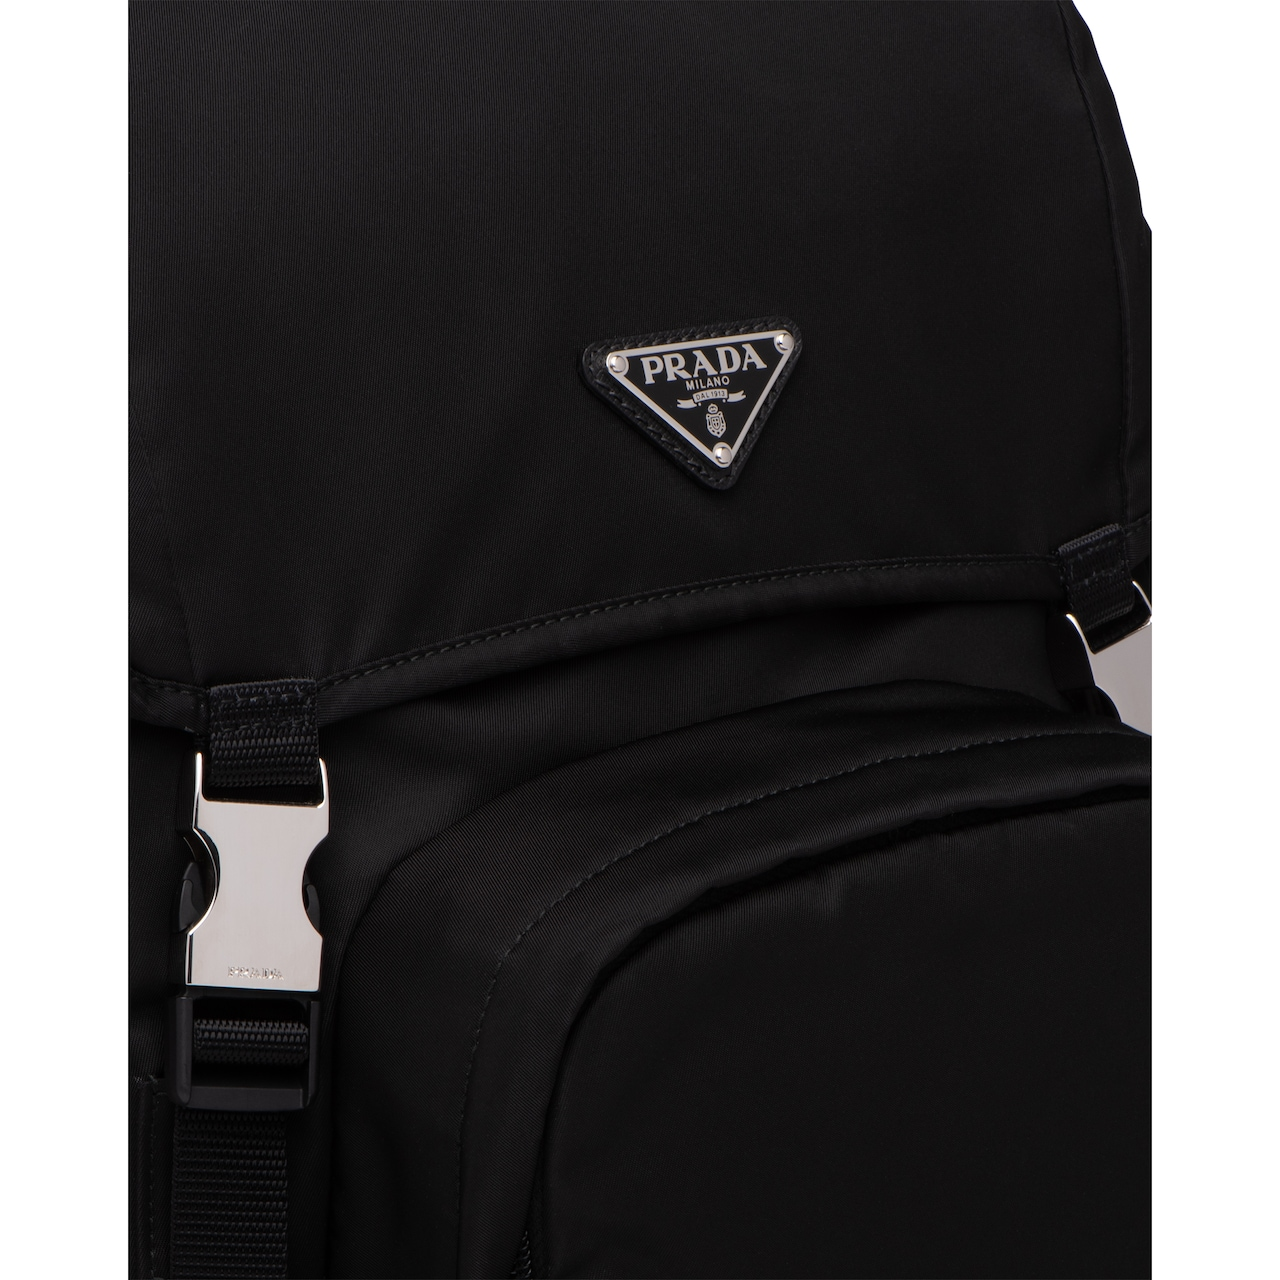 Prada Nylon and Saffiano leather backpack 6